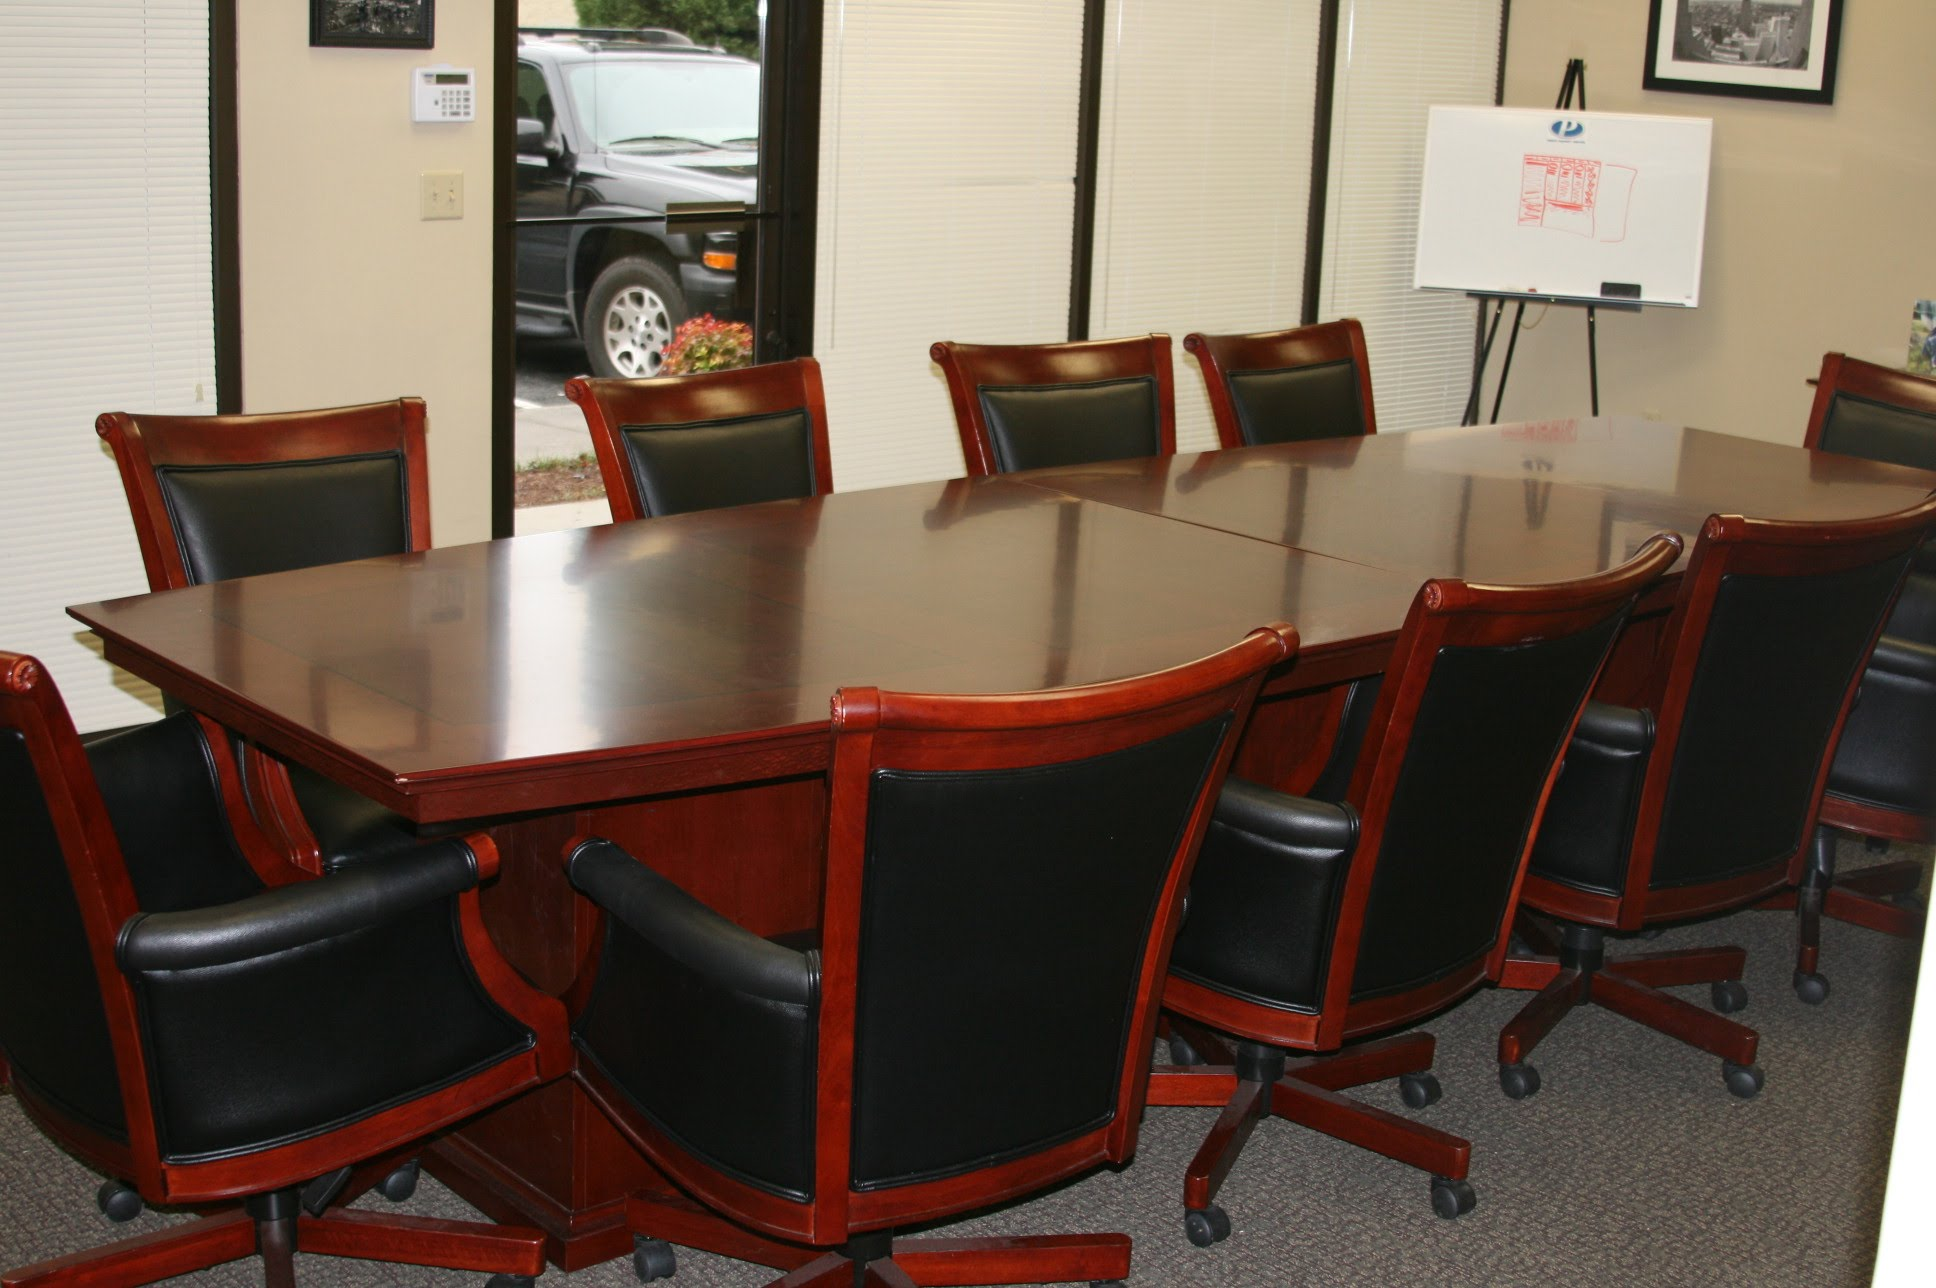 Beautiful ... Mar Consists Of A 12 Foot Inlay Conference Table And 10 Del Mar  Executive High Back Chairs In Black Leather And Wood. Chairs Have Pneumatic  Adjustment, ...